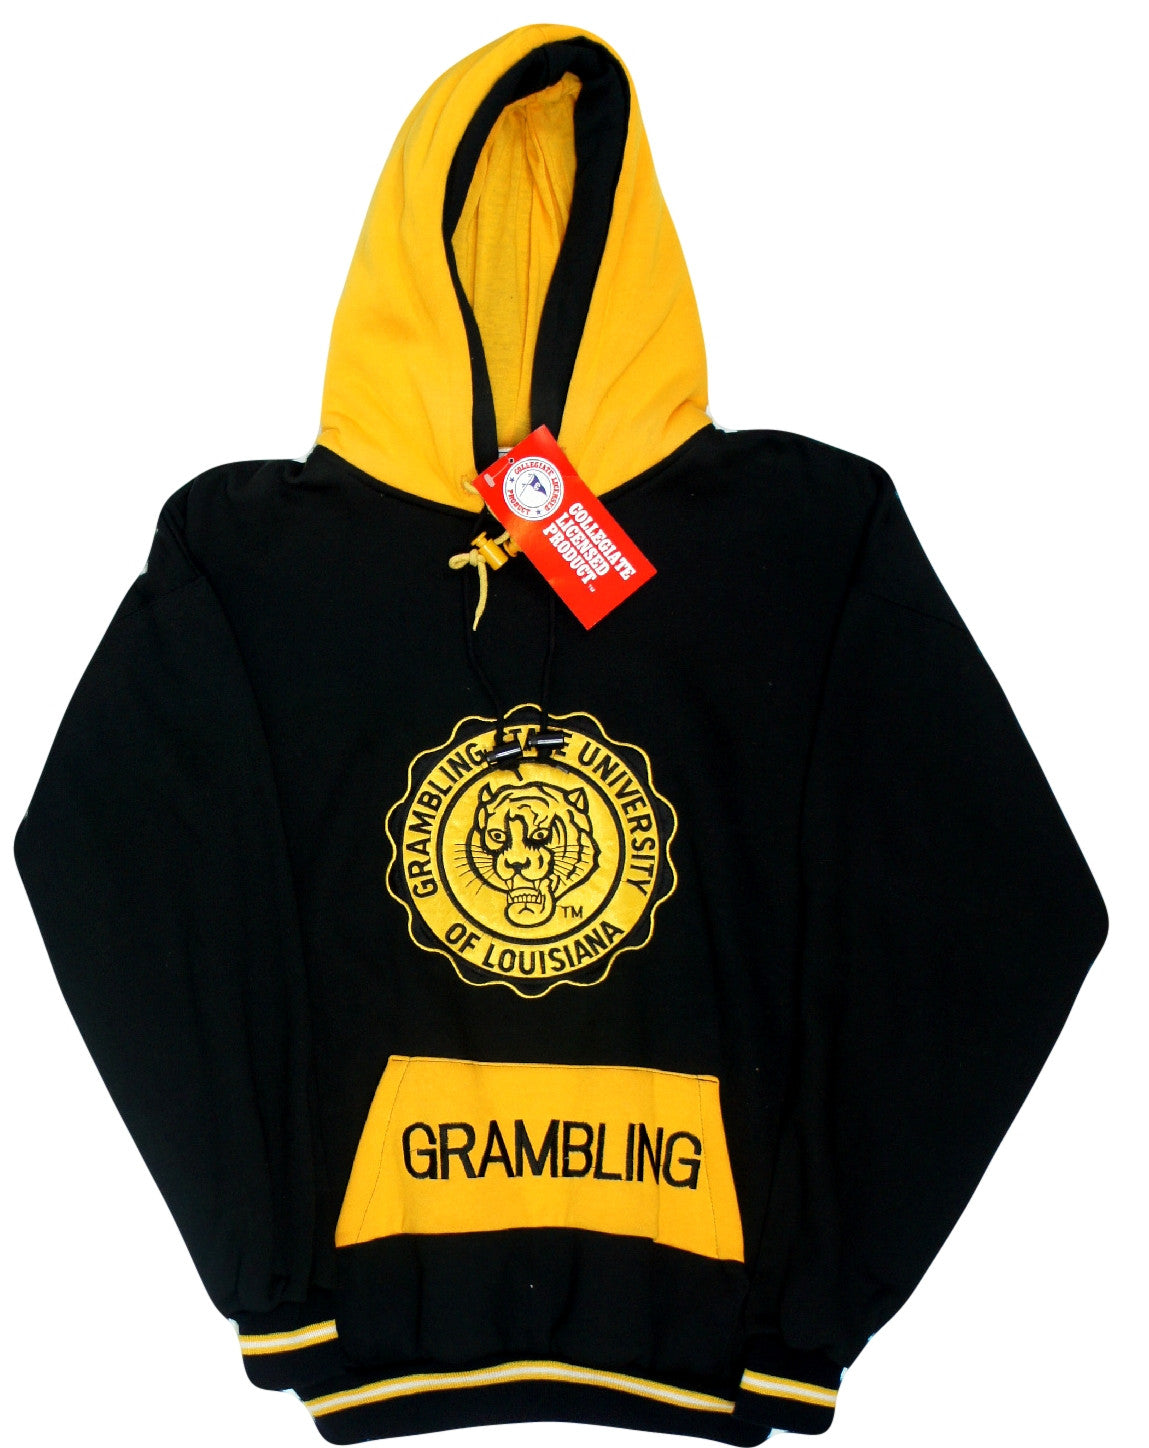 Grambling Tigers 90's Hoodie - And Still